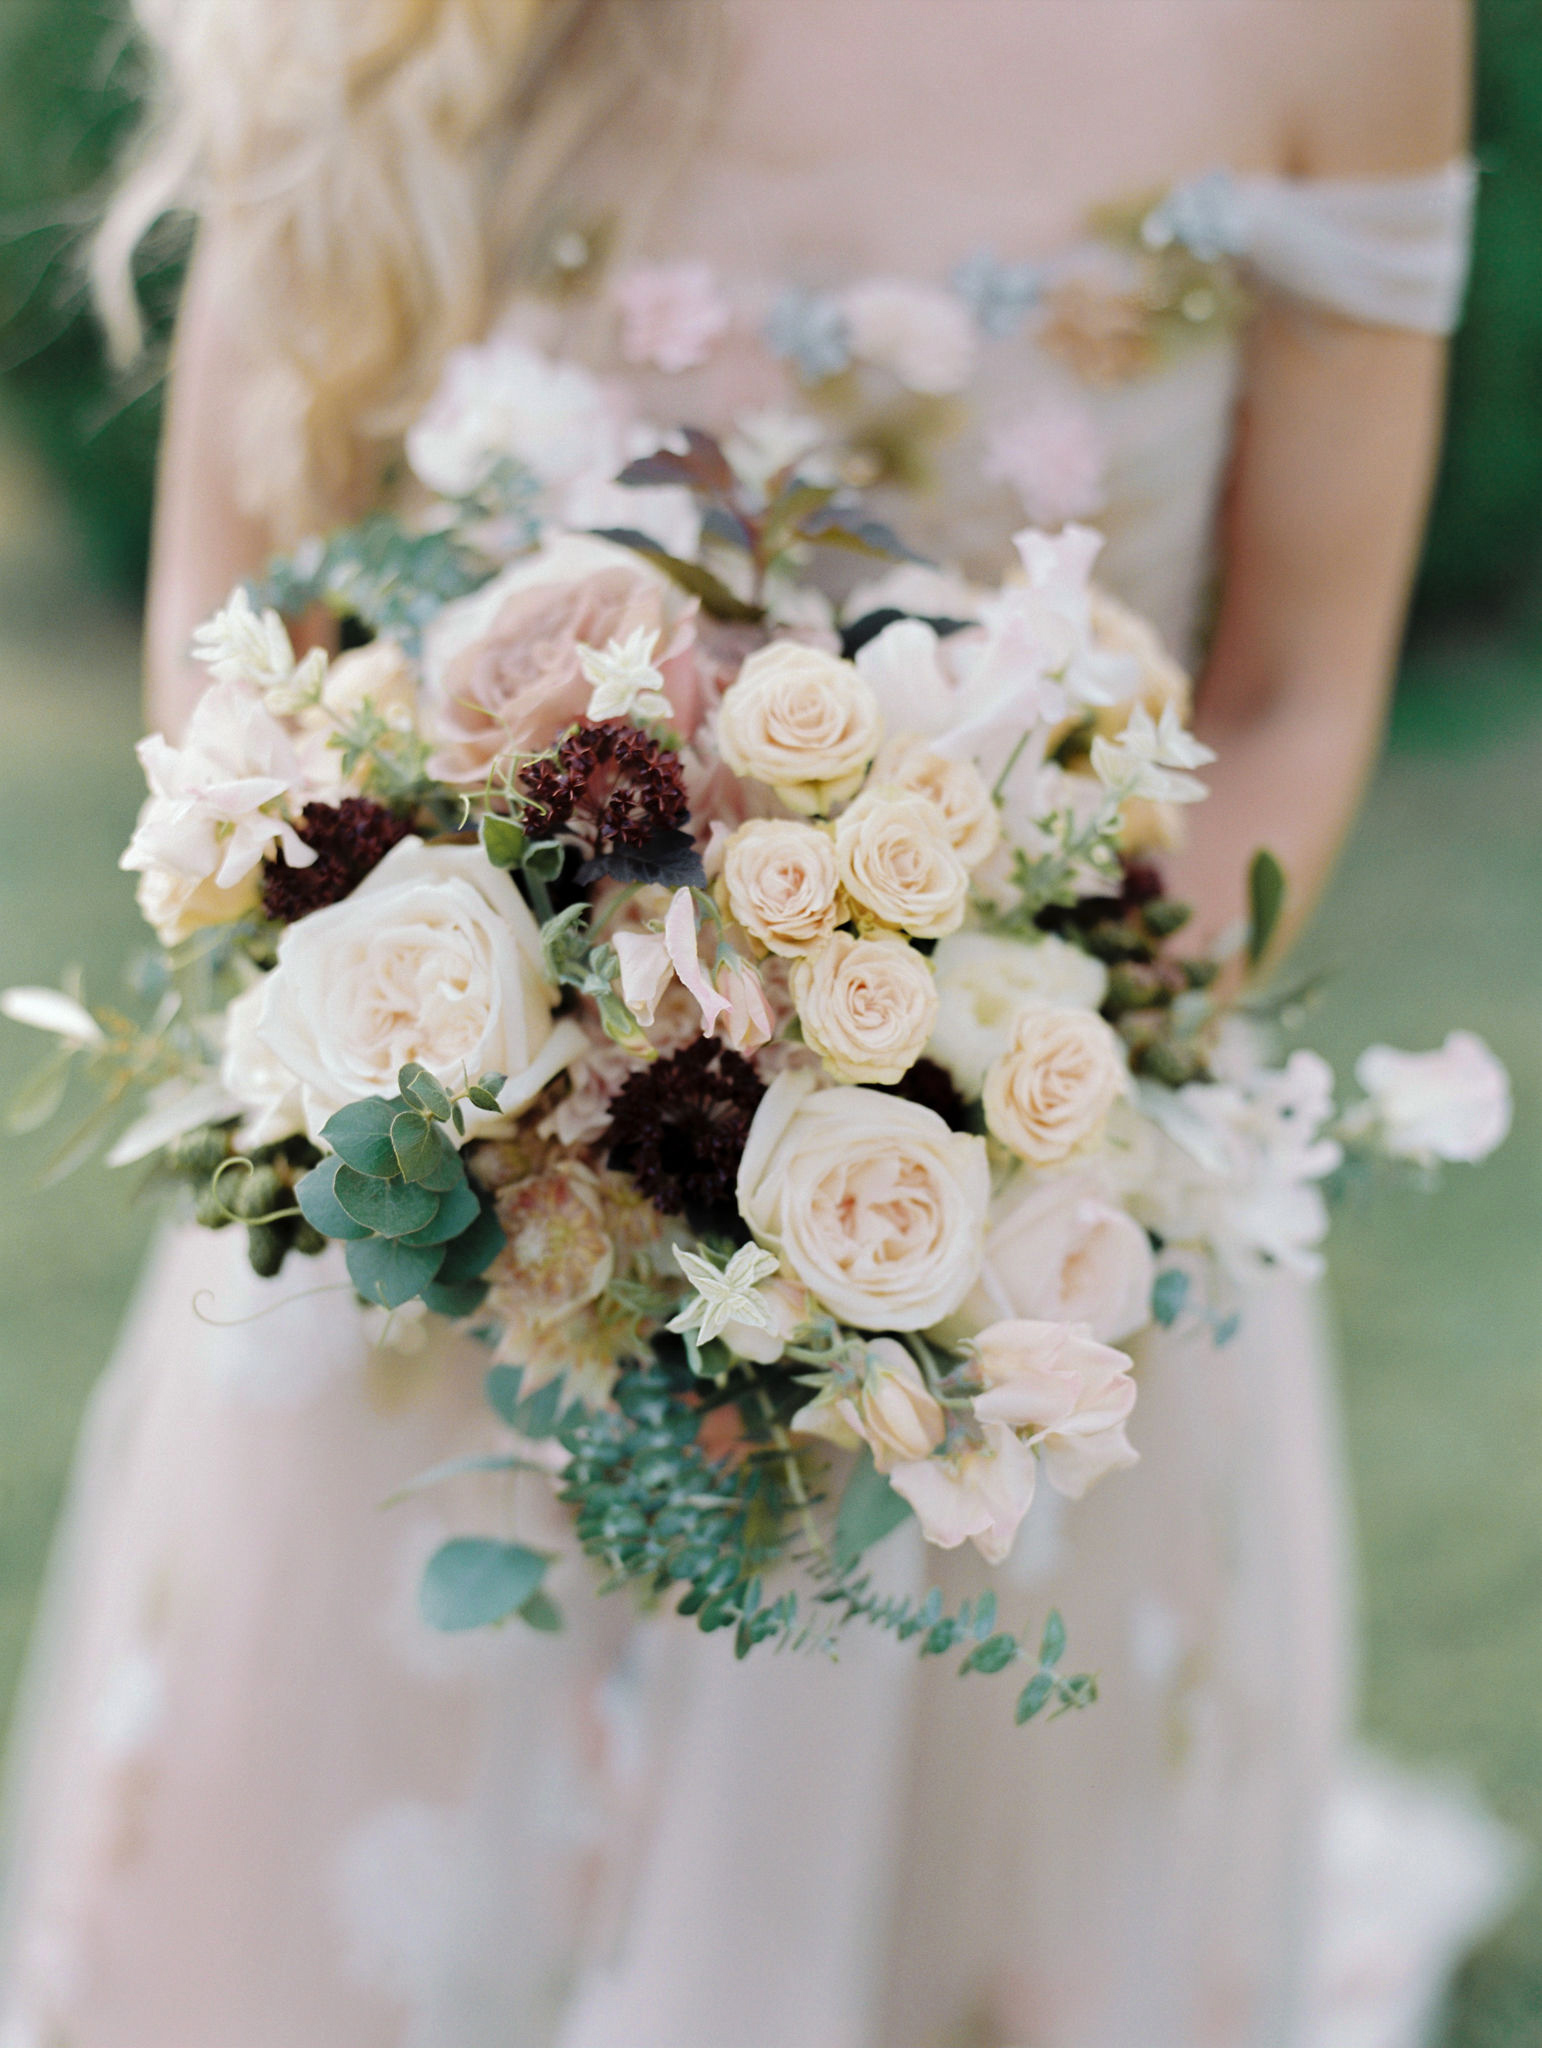 close-up bride's bouquet